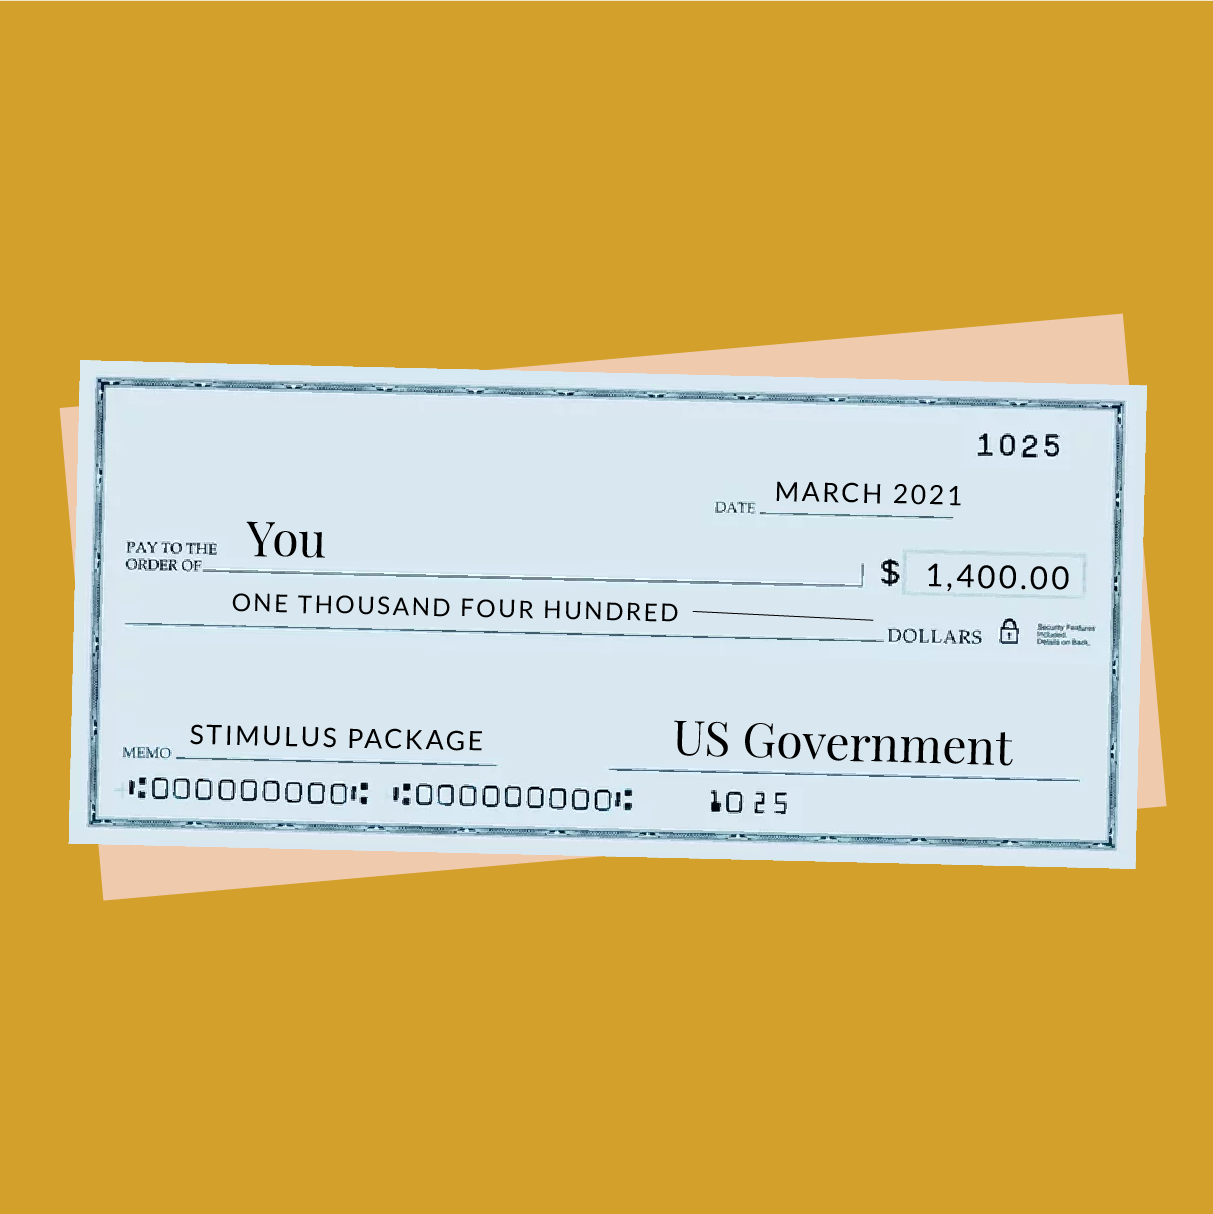 An illustration of a check for $1,400, made out to you.